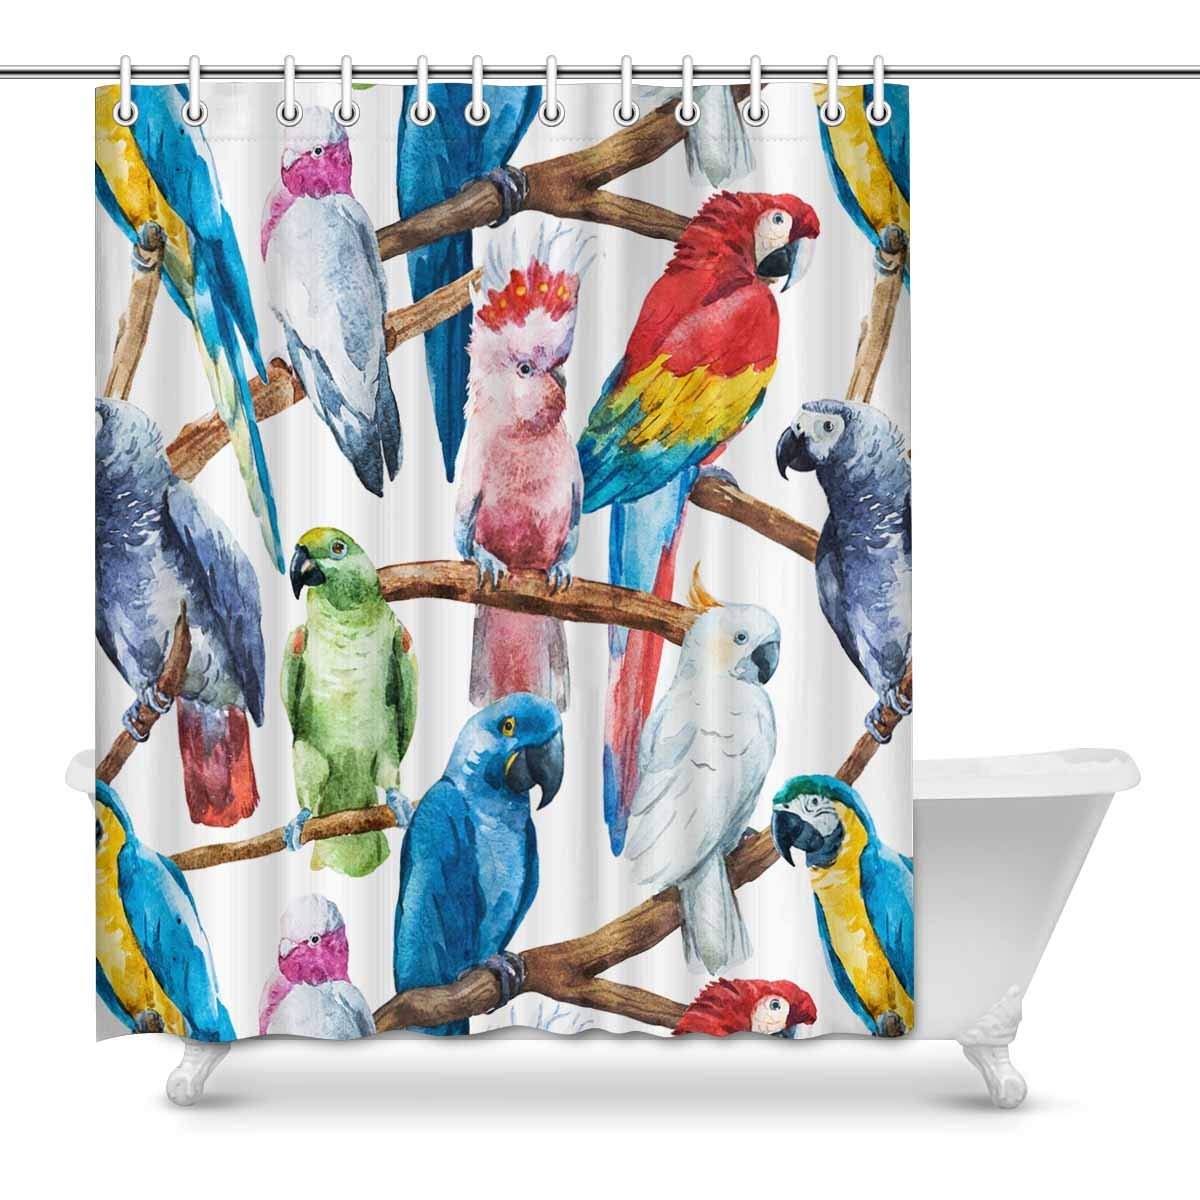 Garden Curtains Tropical Colorful Parrot Polyester Fabric